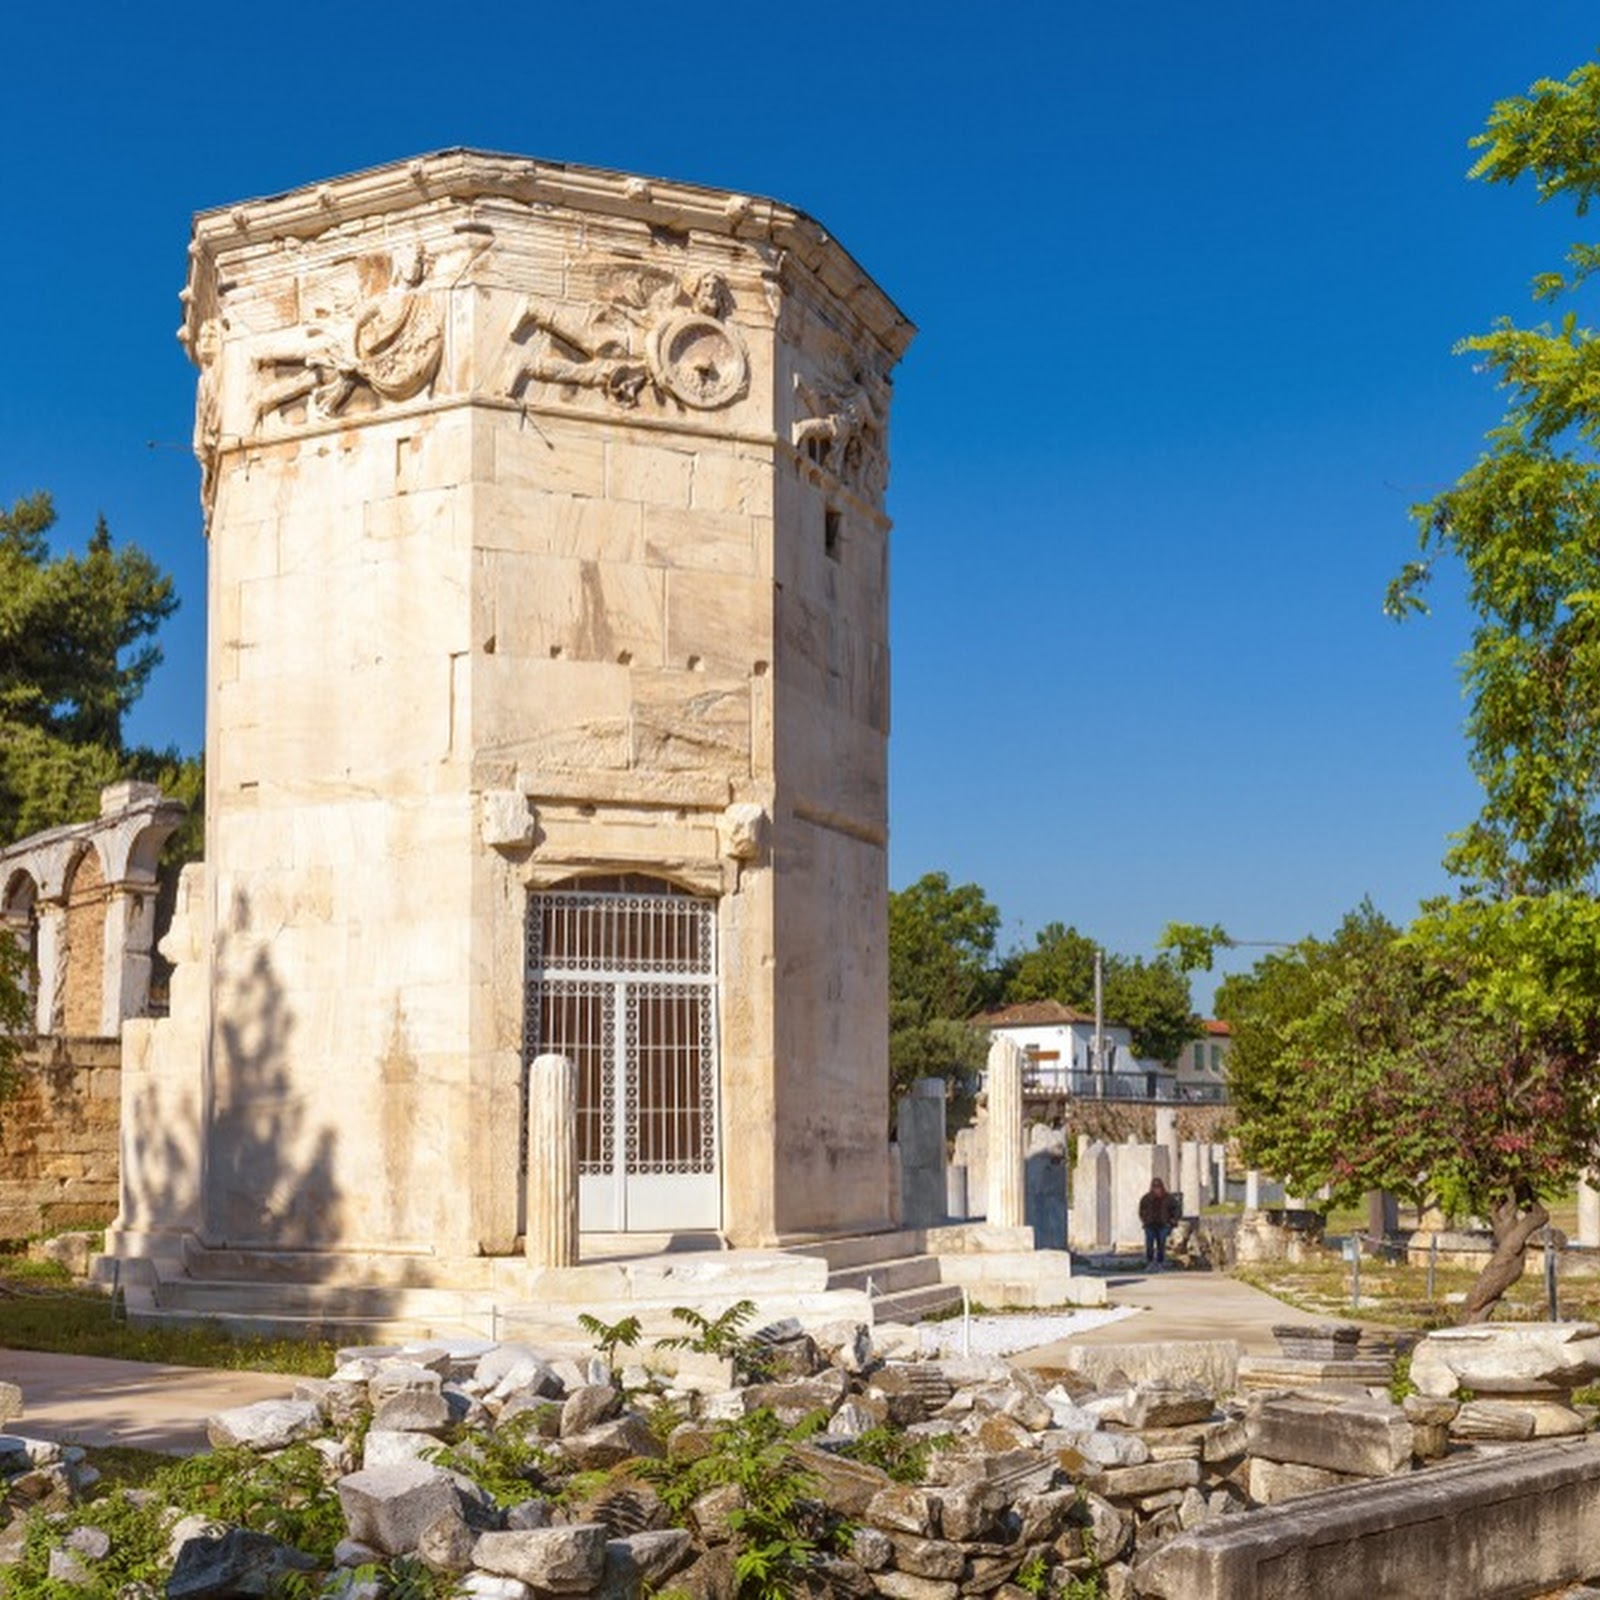 Tower of The Winds: The World's First Weather Station